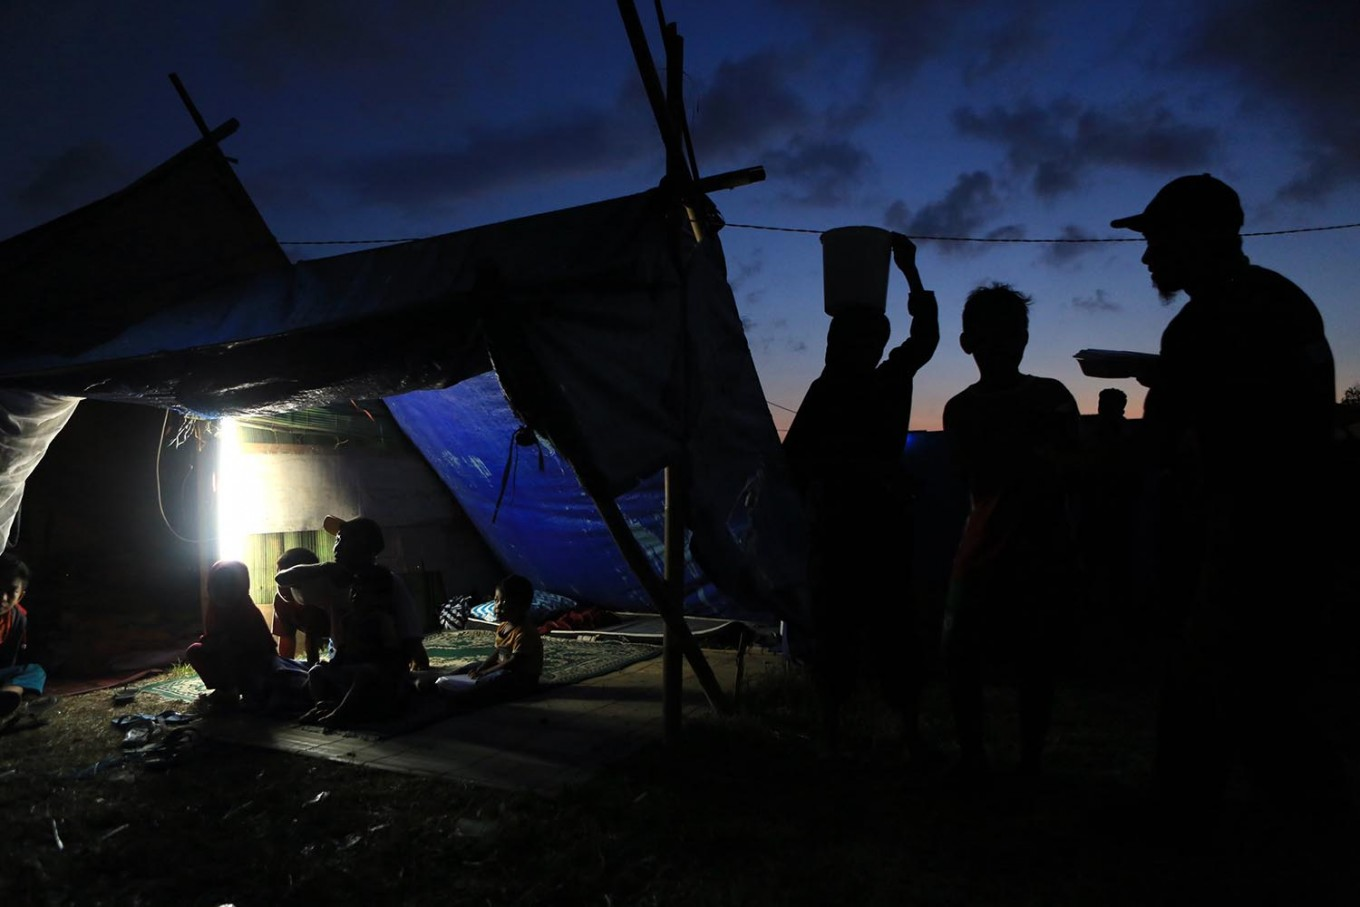 Safe place: People erect tents and try to get electricity and clean water. JP/ Seto Wardhana